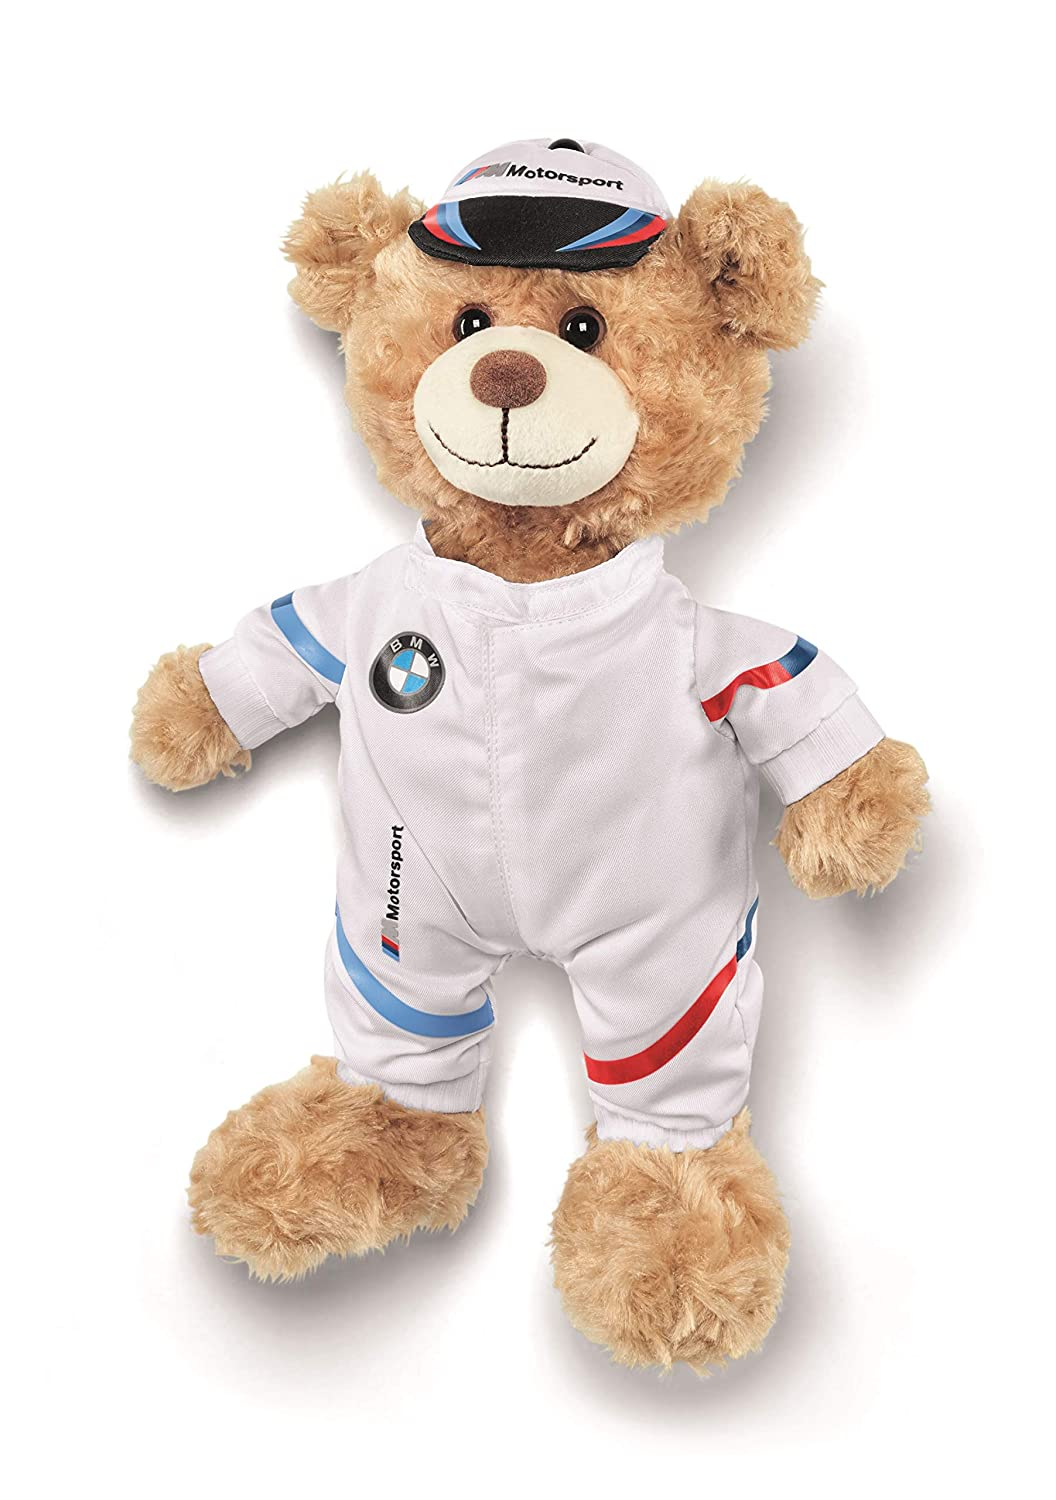 BMW Original M Motorsport Peluche